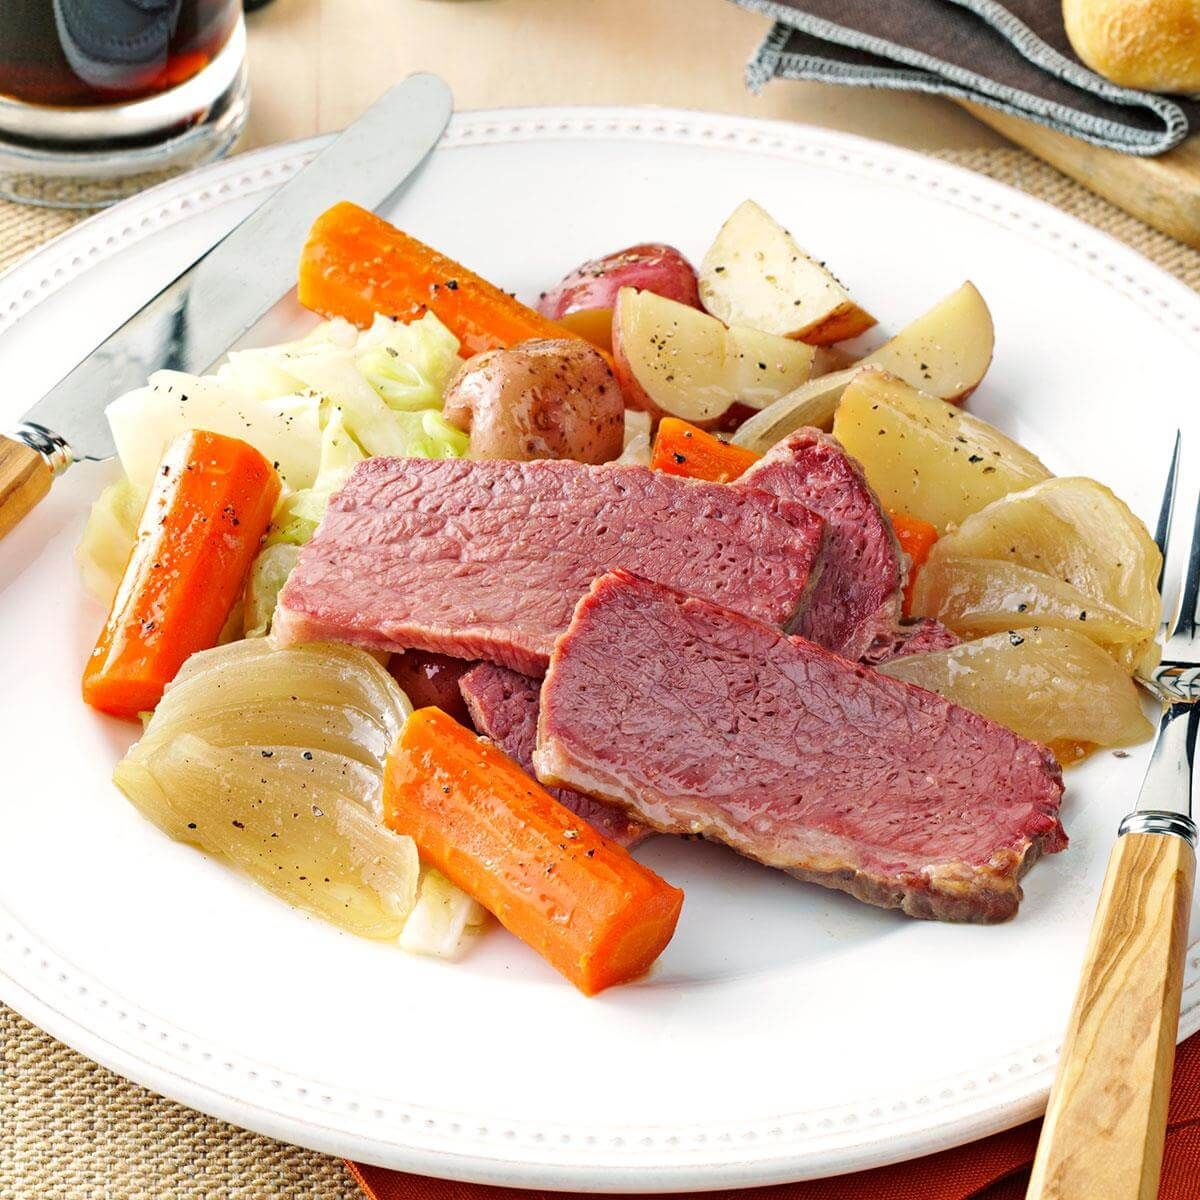 Guinness Corned Beef And Cabbage Recipe Corned Beef Recipes Corn Beef And Cabbage Guinness Corned Beef And Cabbage Recipe